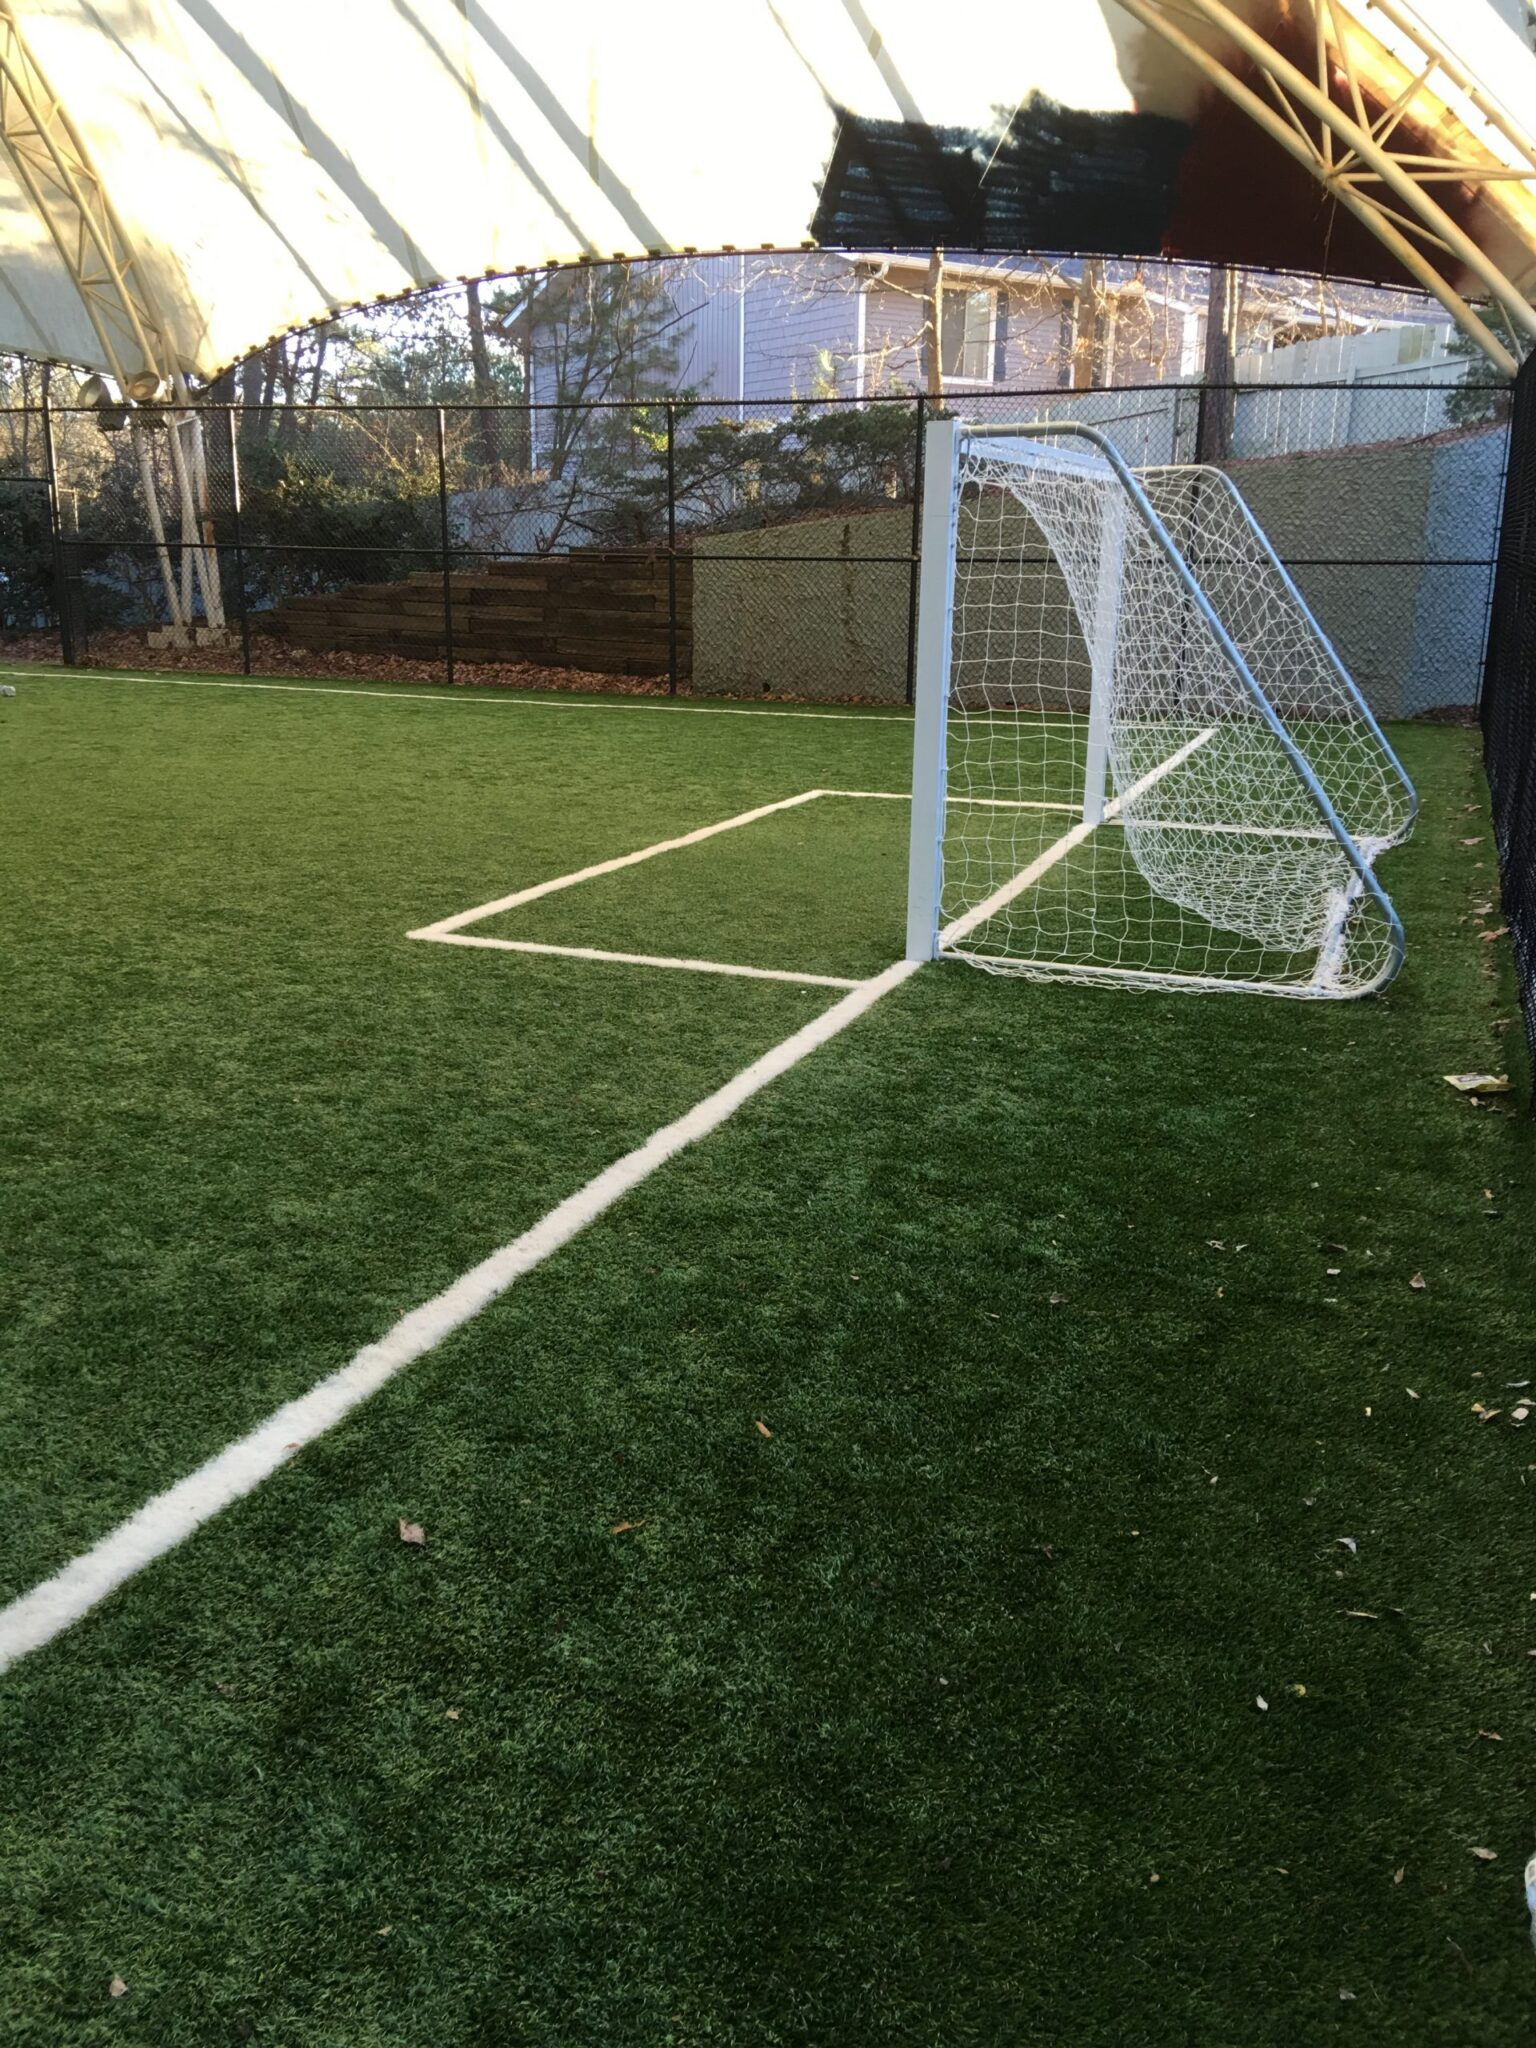 residential sports field with artificial turf